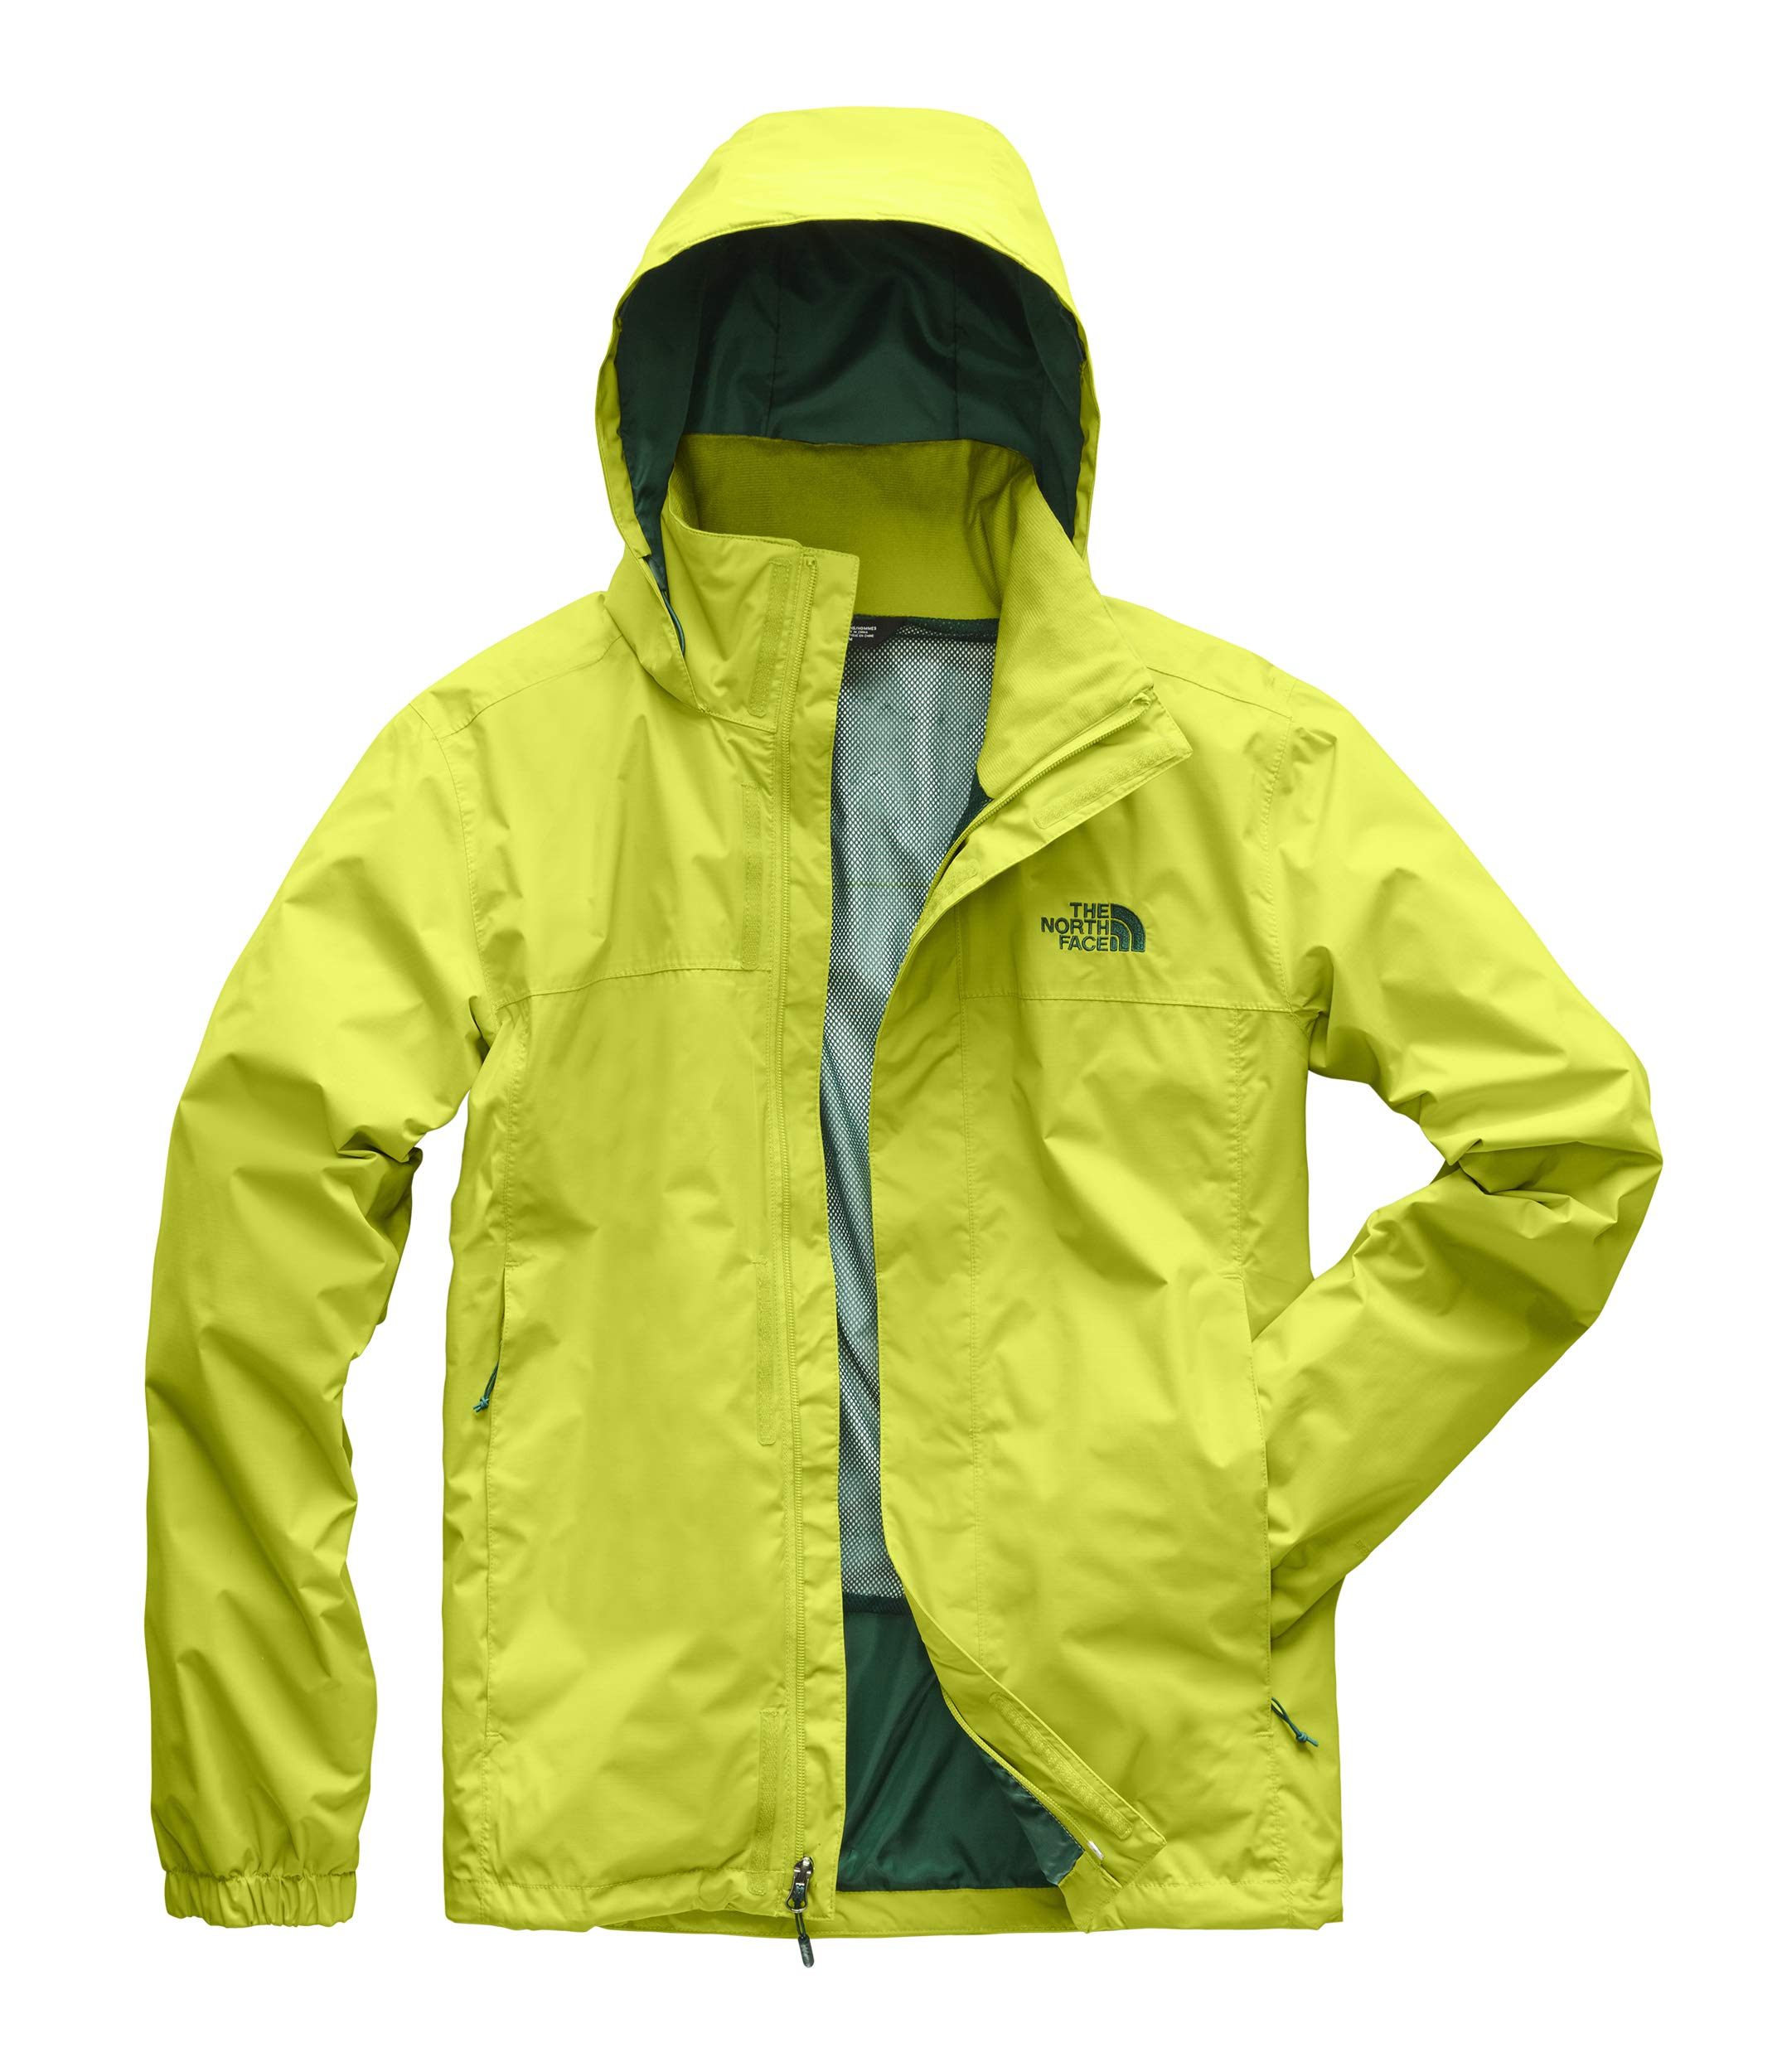 a634c5061 The North Face Men's Resolve 2 Jacket Lime Green/Botanical Garden Green  X-Large